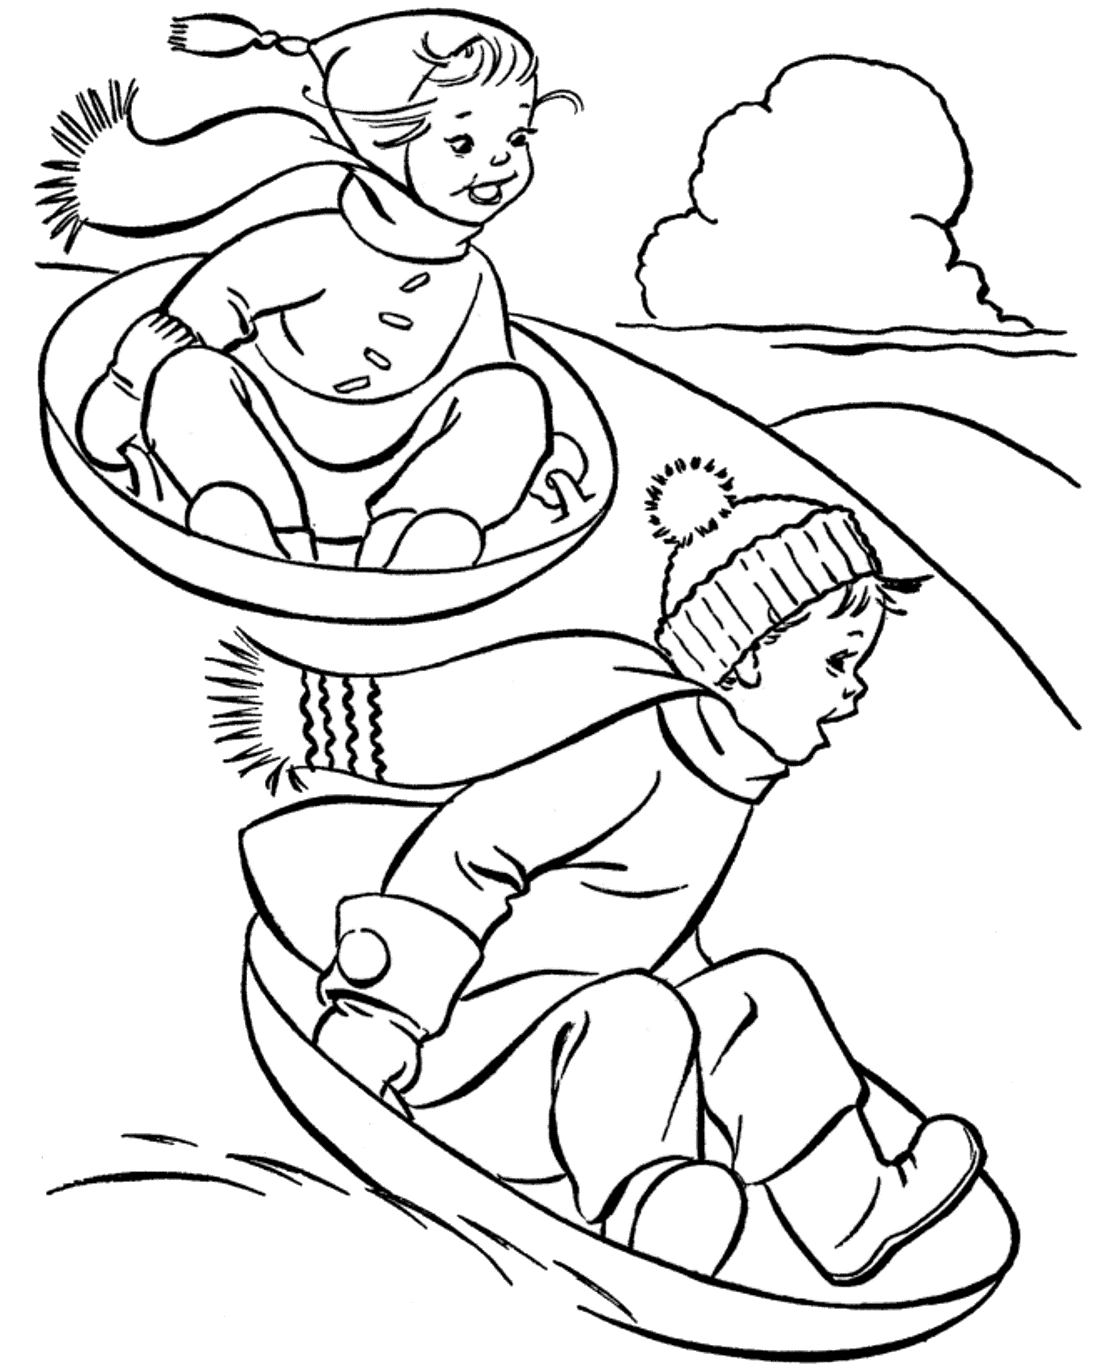 free printable winter coloring pages for kids free printable winter coloring pages for kids winter coloring for printable free kids pages